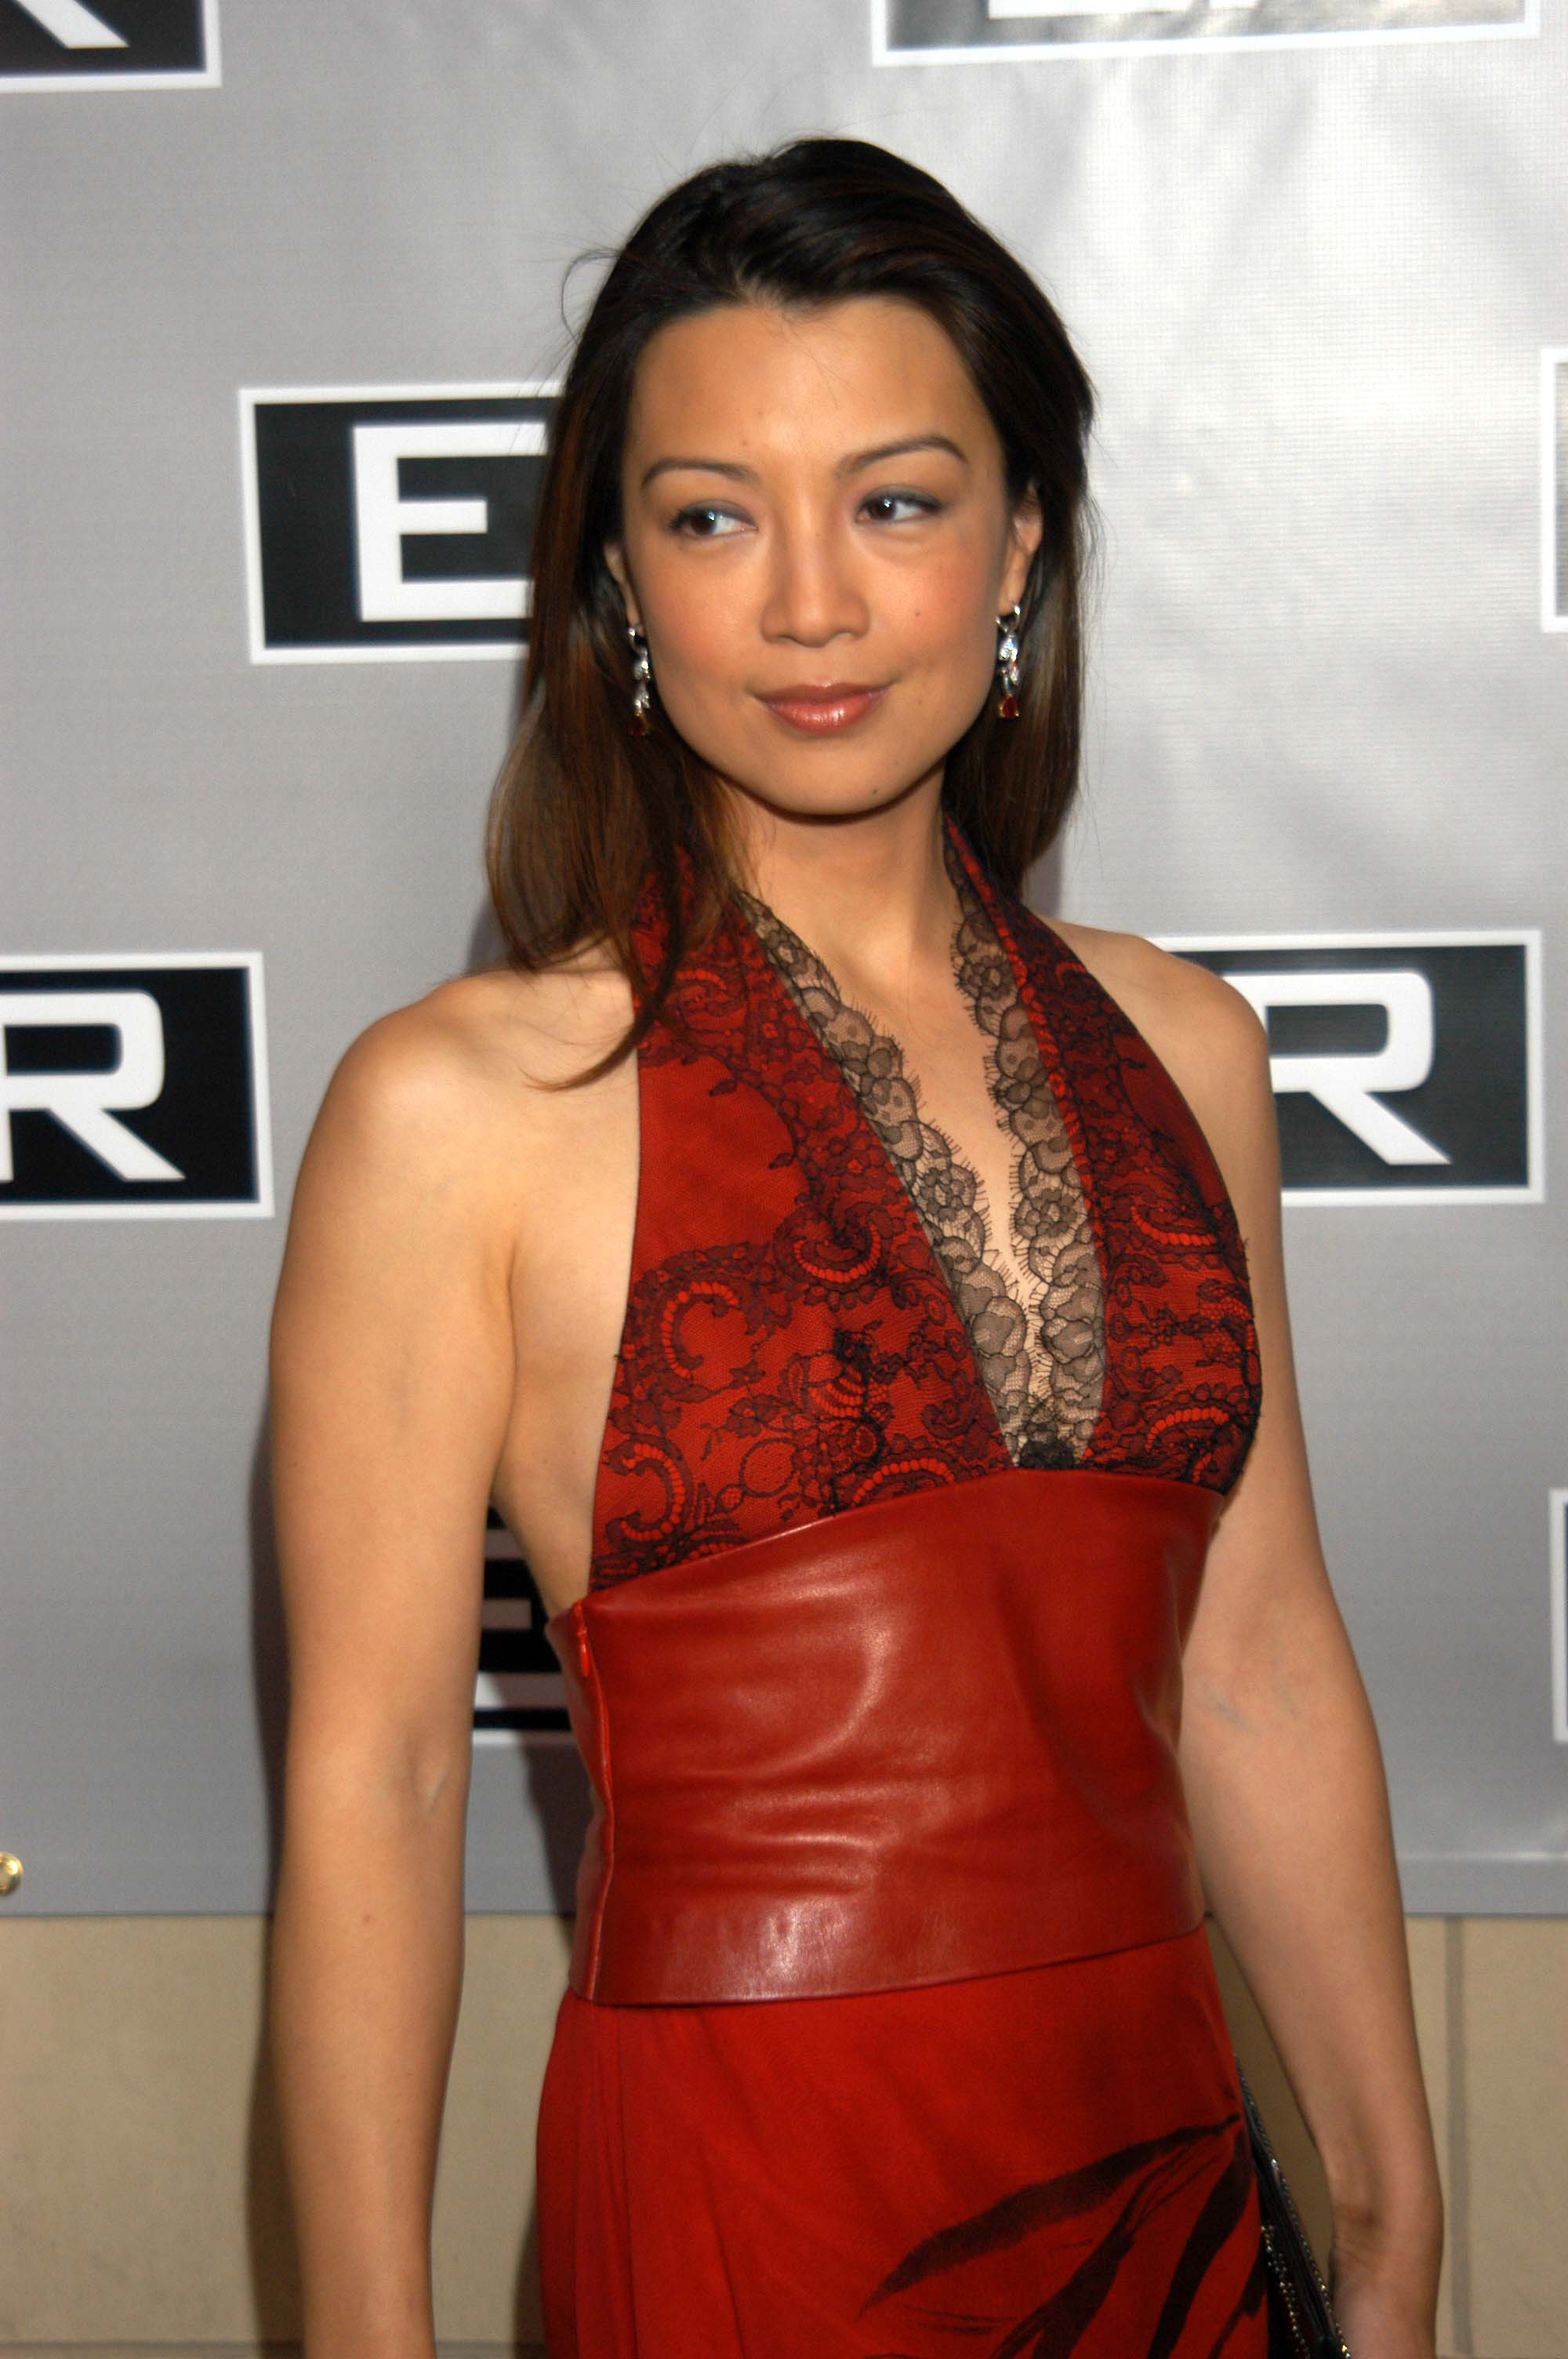 Leaked Ming-Na Wen nude photos 2019